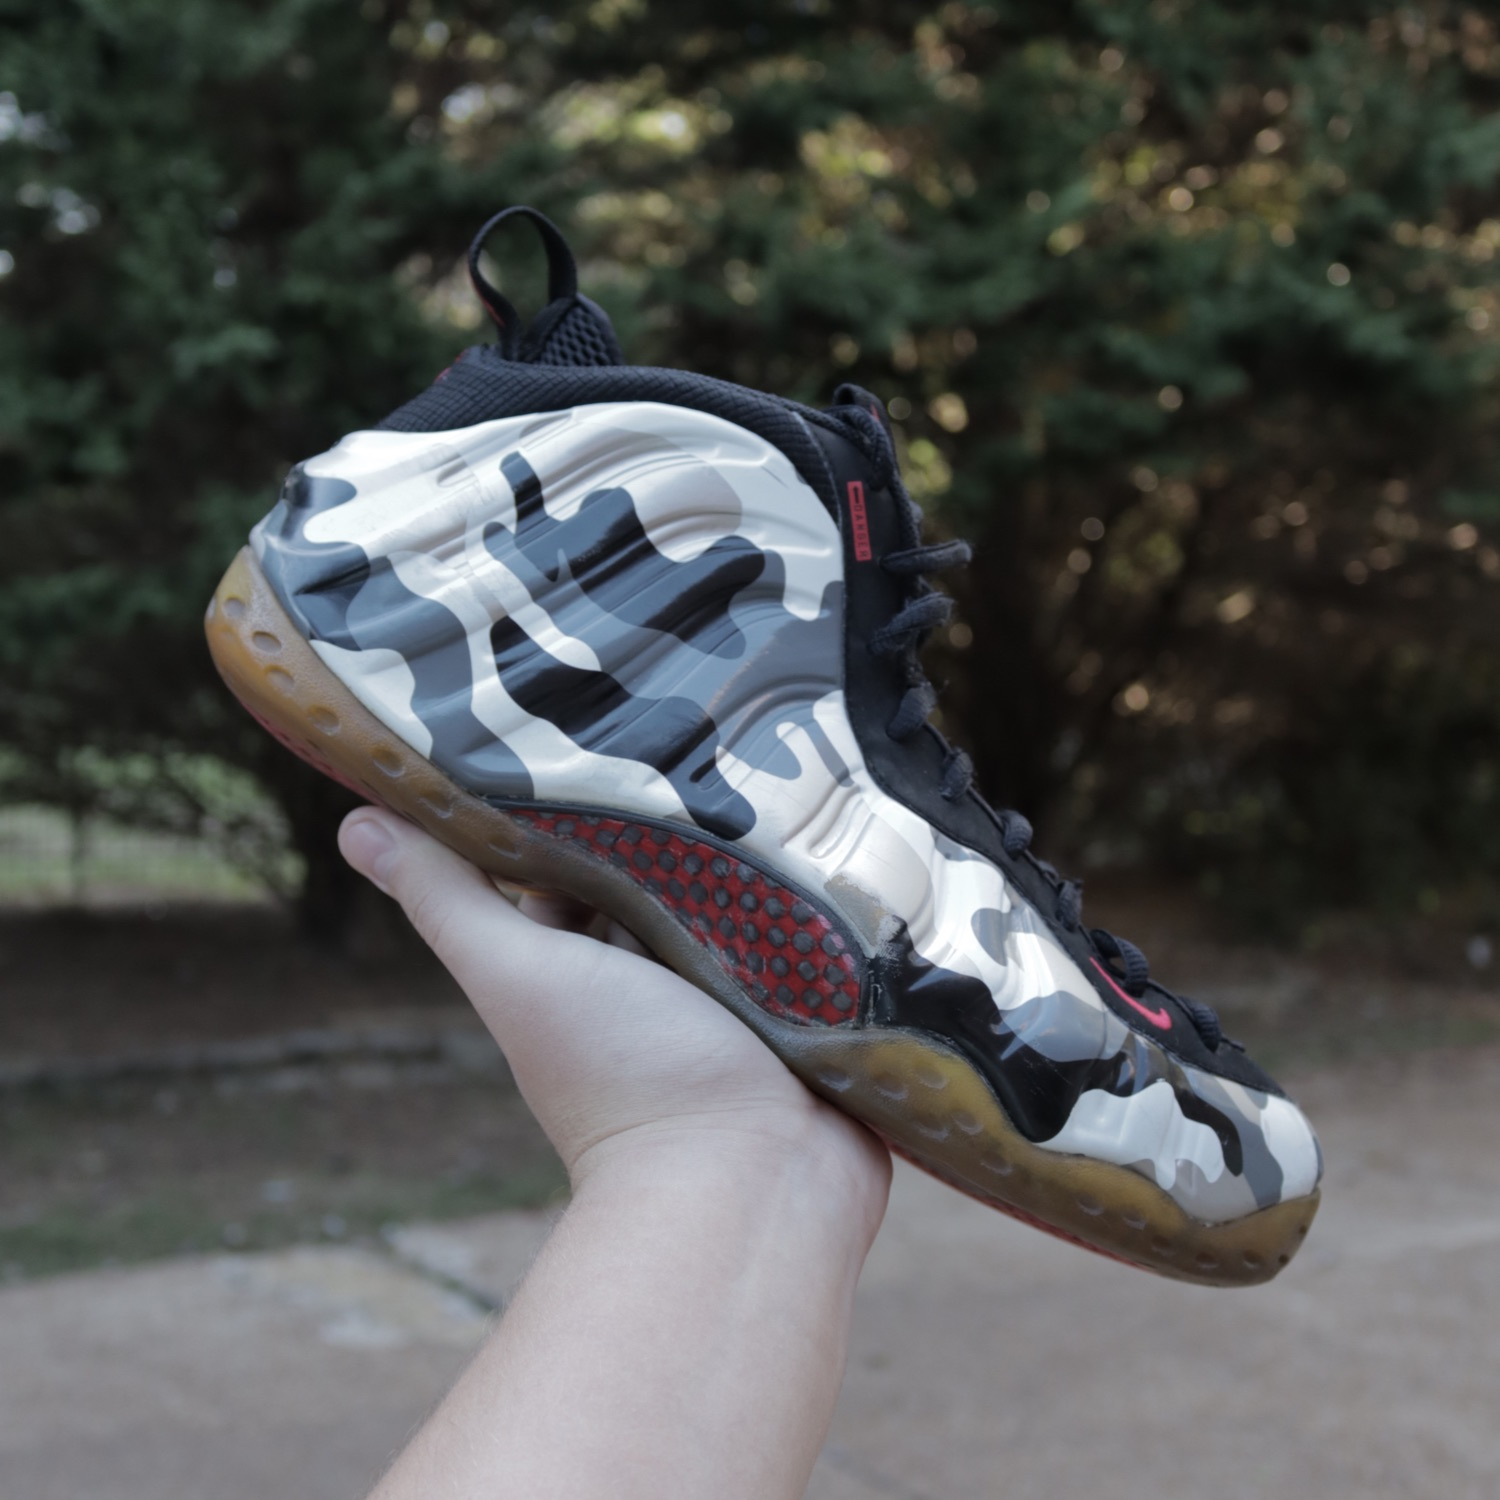 Pin on Nike Air Foamposite One Sneaker CollectionPinterest